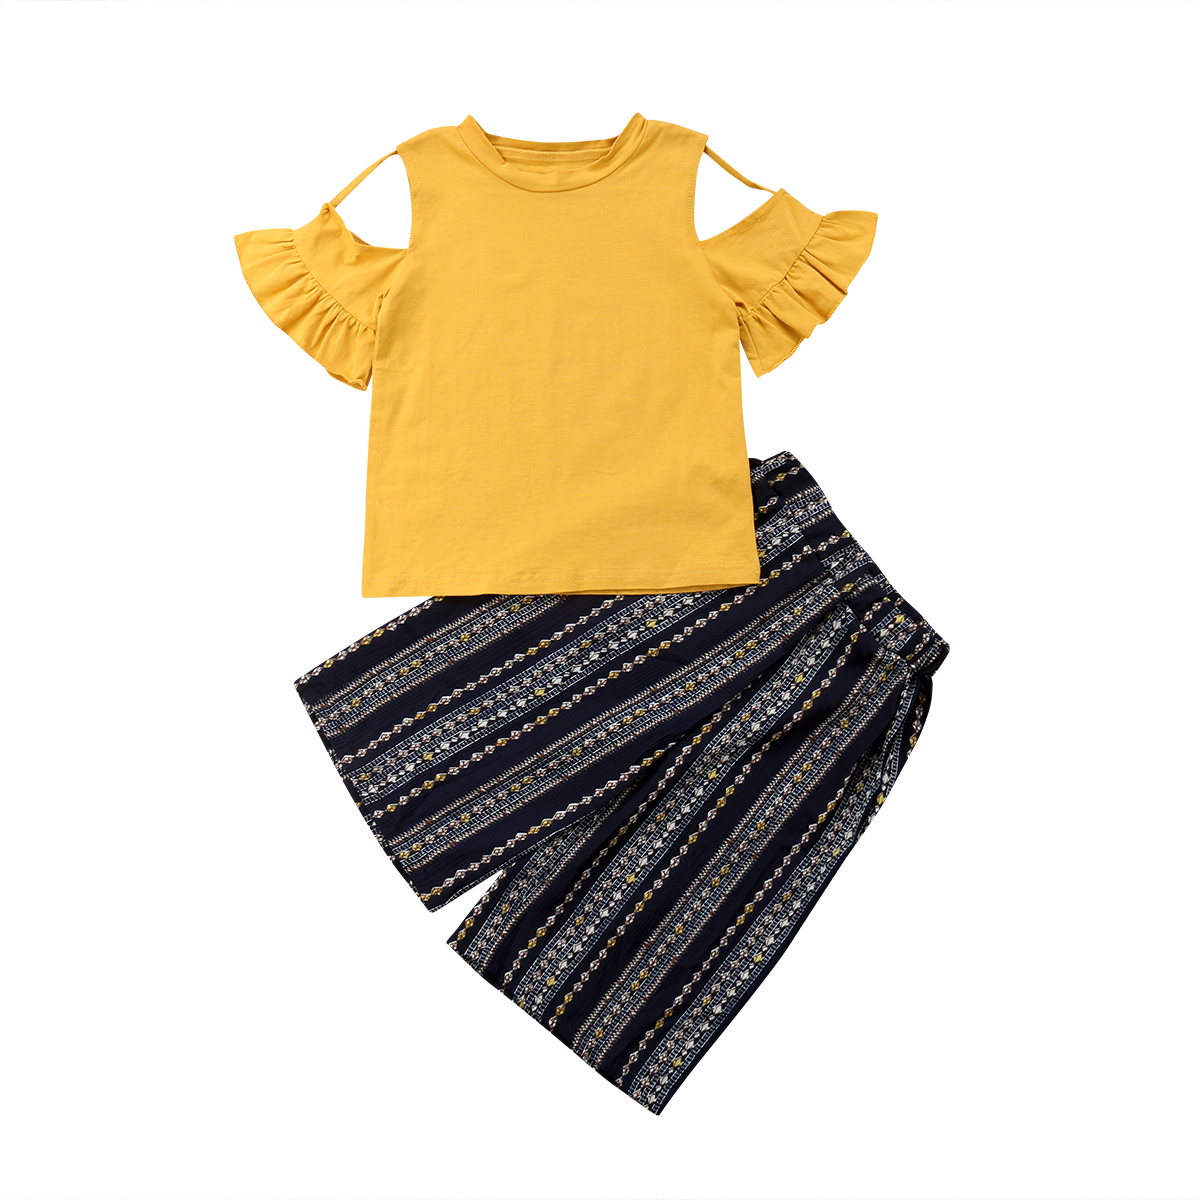 Kids Baby Girl Clothing Off shoulder Tops T-Shirts Long Pants Casual Cotton Cute 2Pcs Clothes Outfits Girls 1-6T kids girls clothing sets off shoulder t shirts